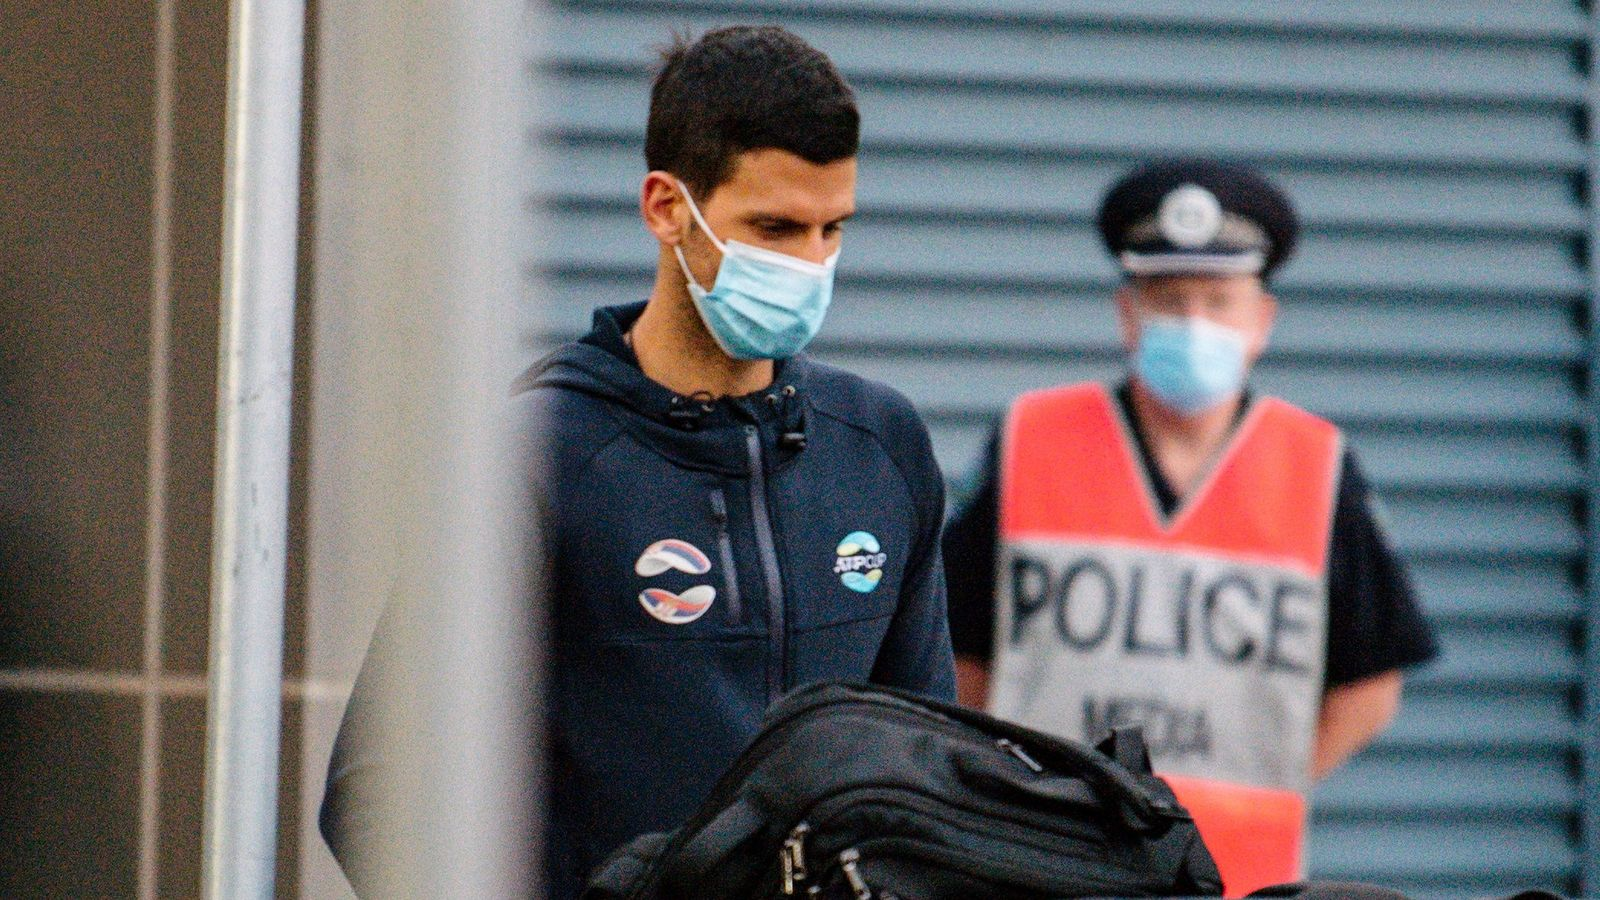 Australian Open stars will not be given 'special treatment' as 72 now in quarantine